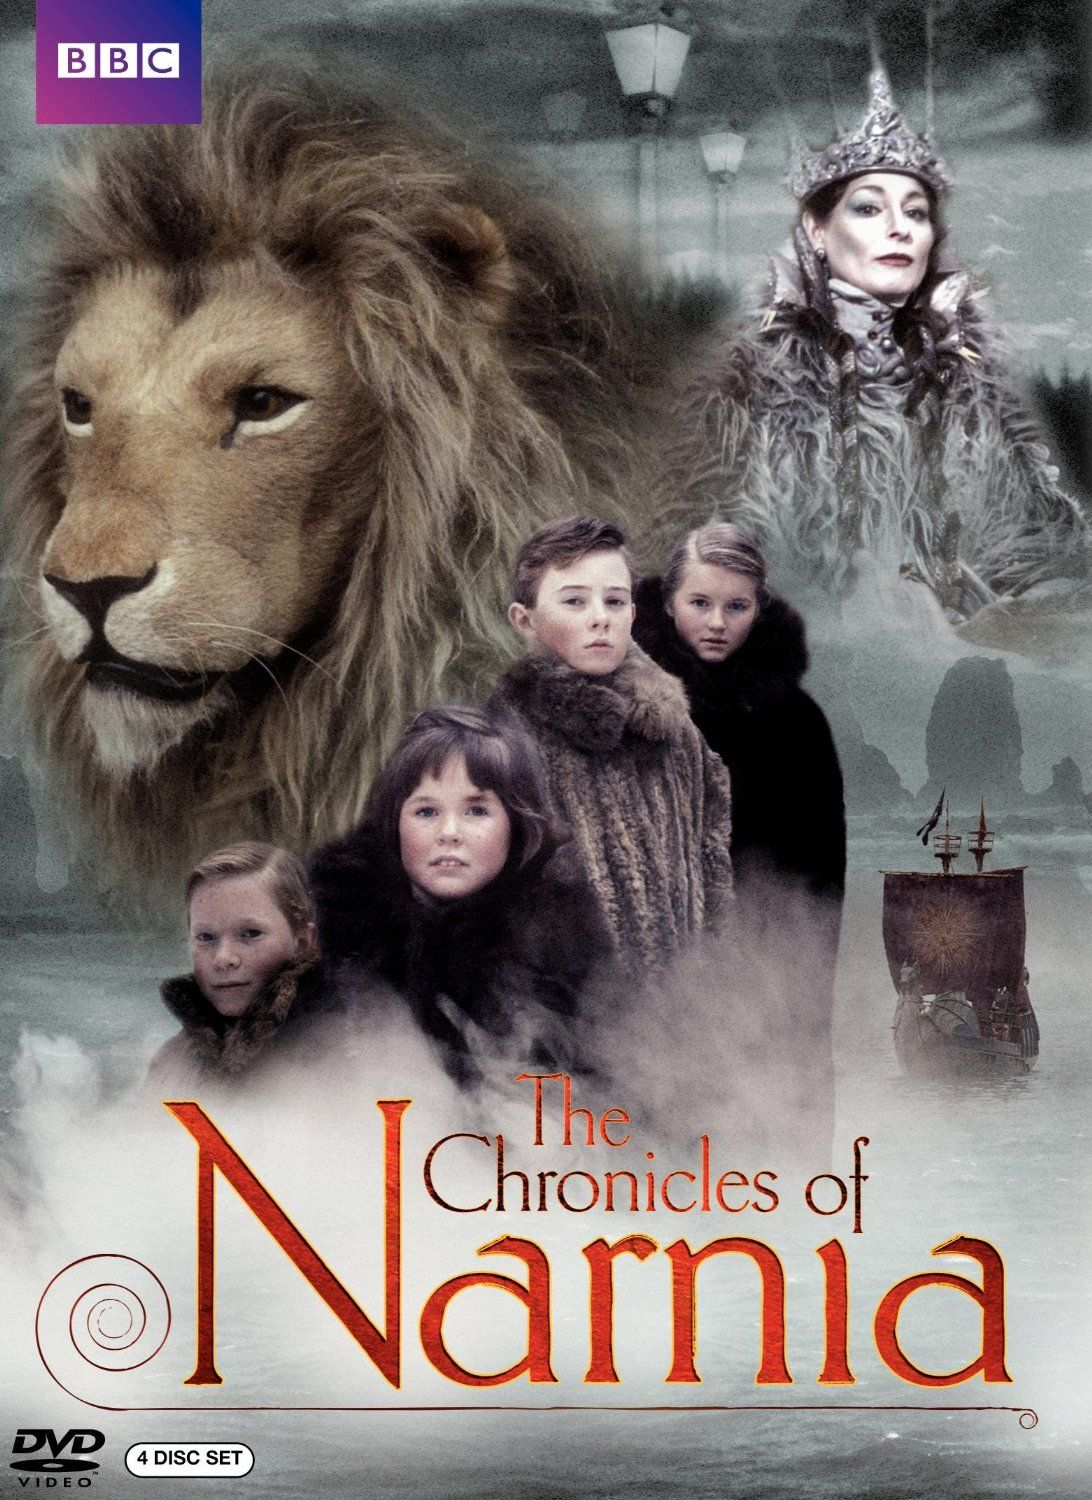 Chronicles of Narnia 4-Disc Set Only $7.90! (reg. $34.98)